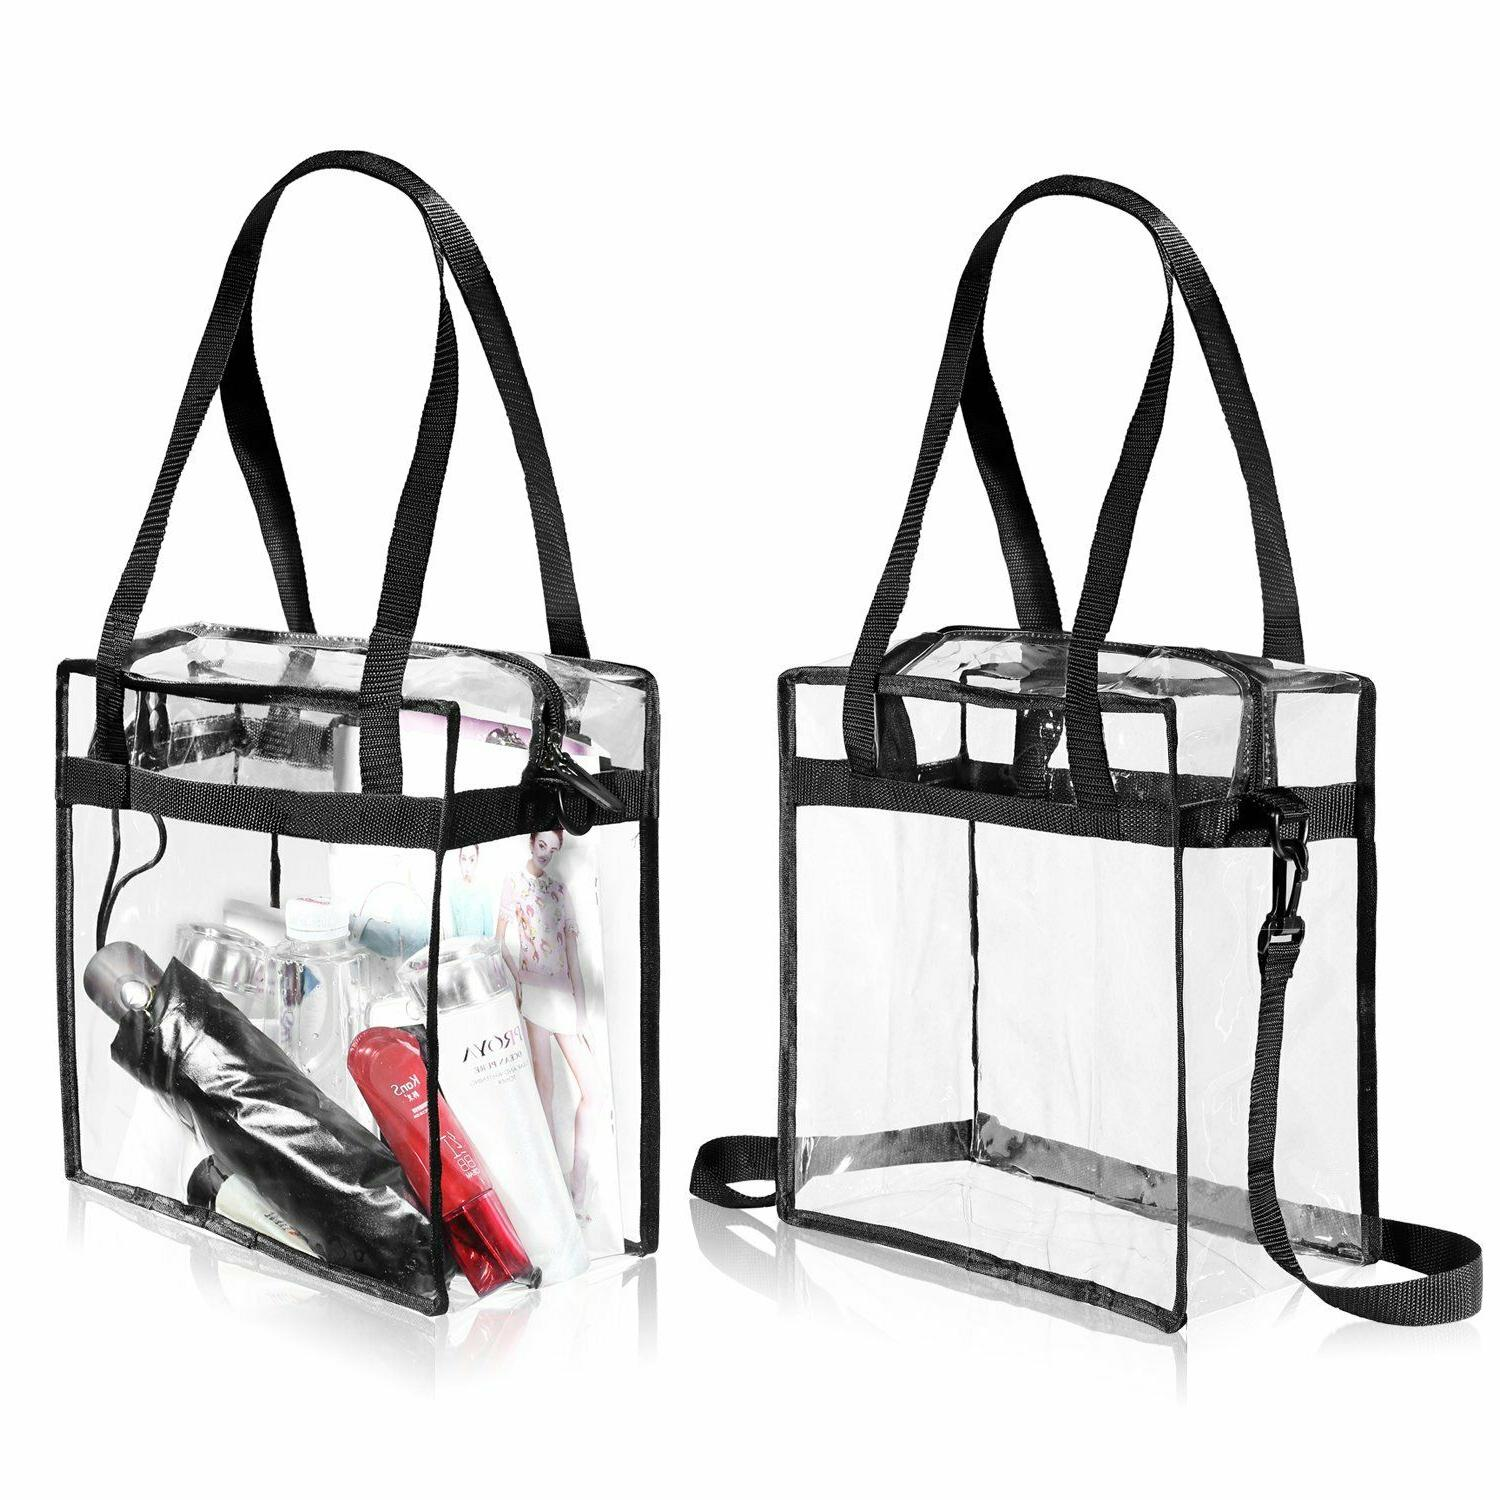 clear bag the clear tote bag